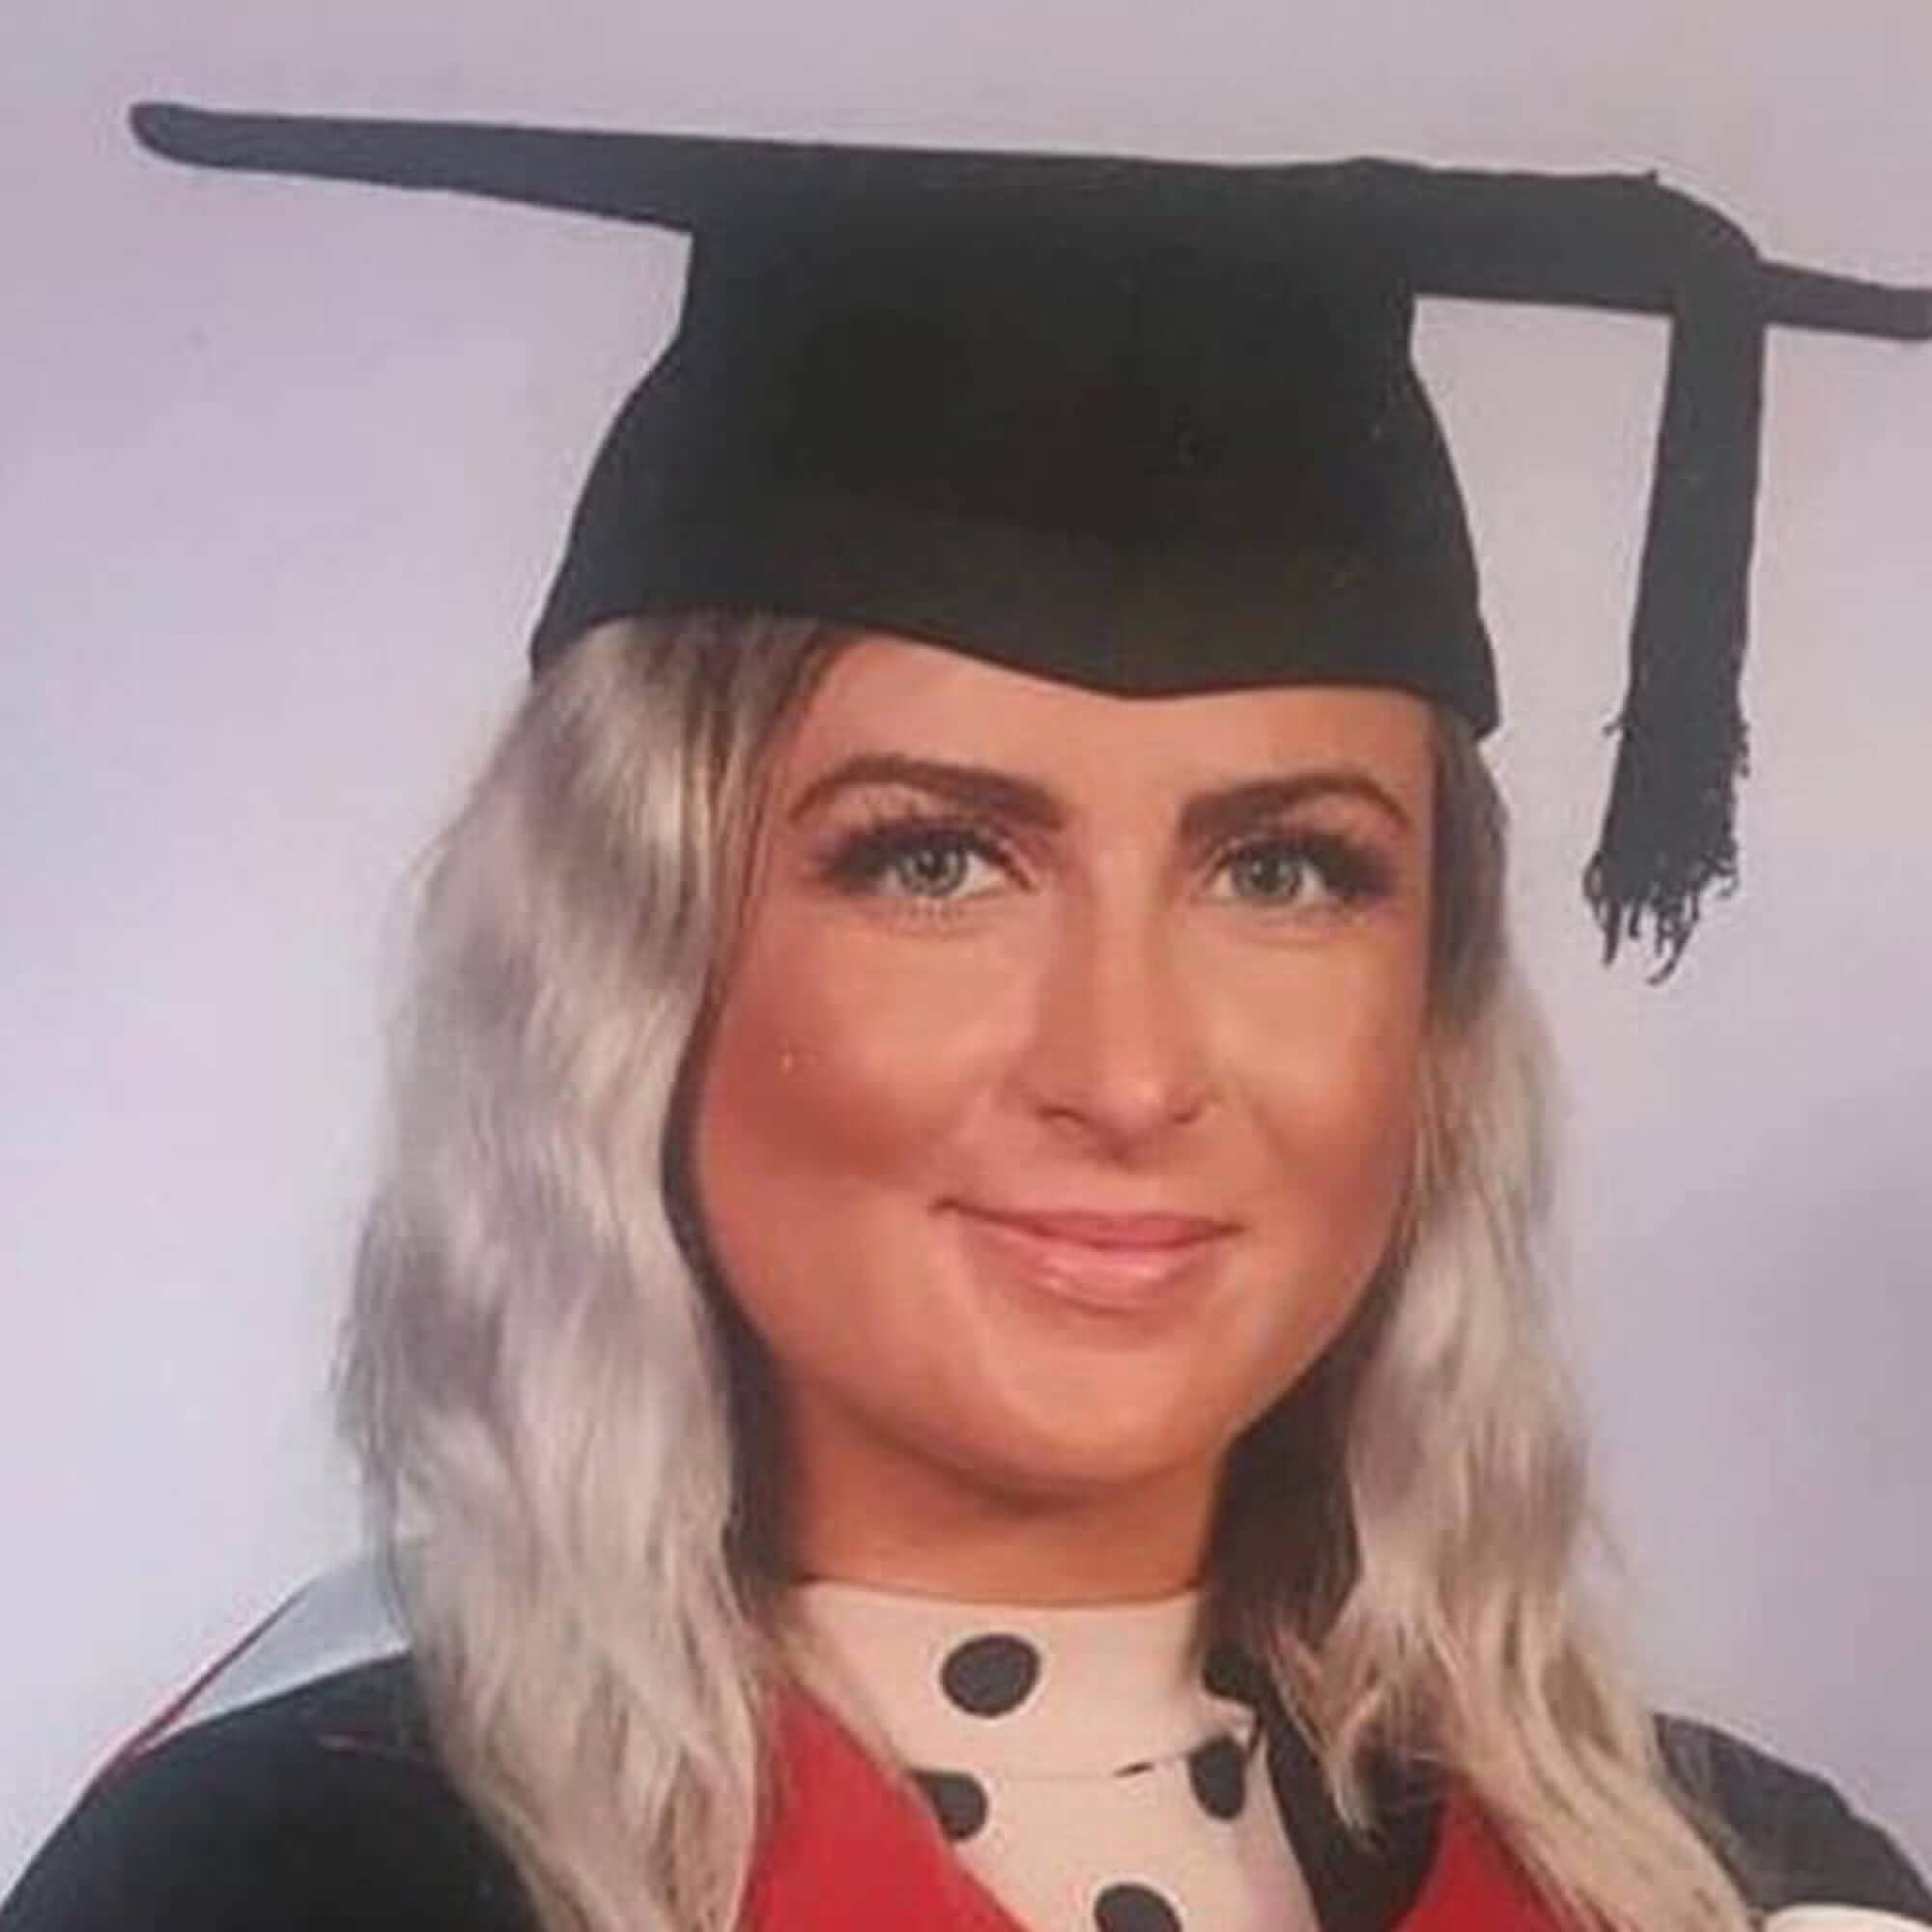 Ellen wearing a graduation gown, smiling to the camera.